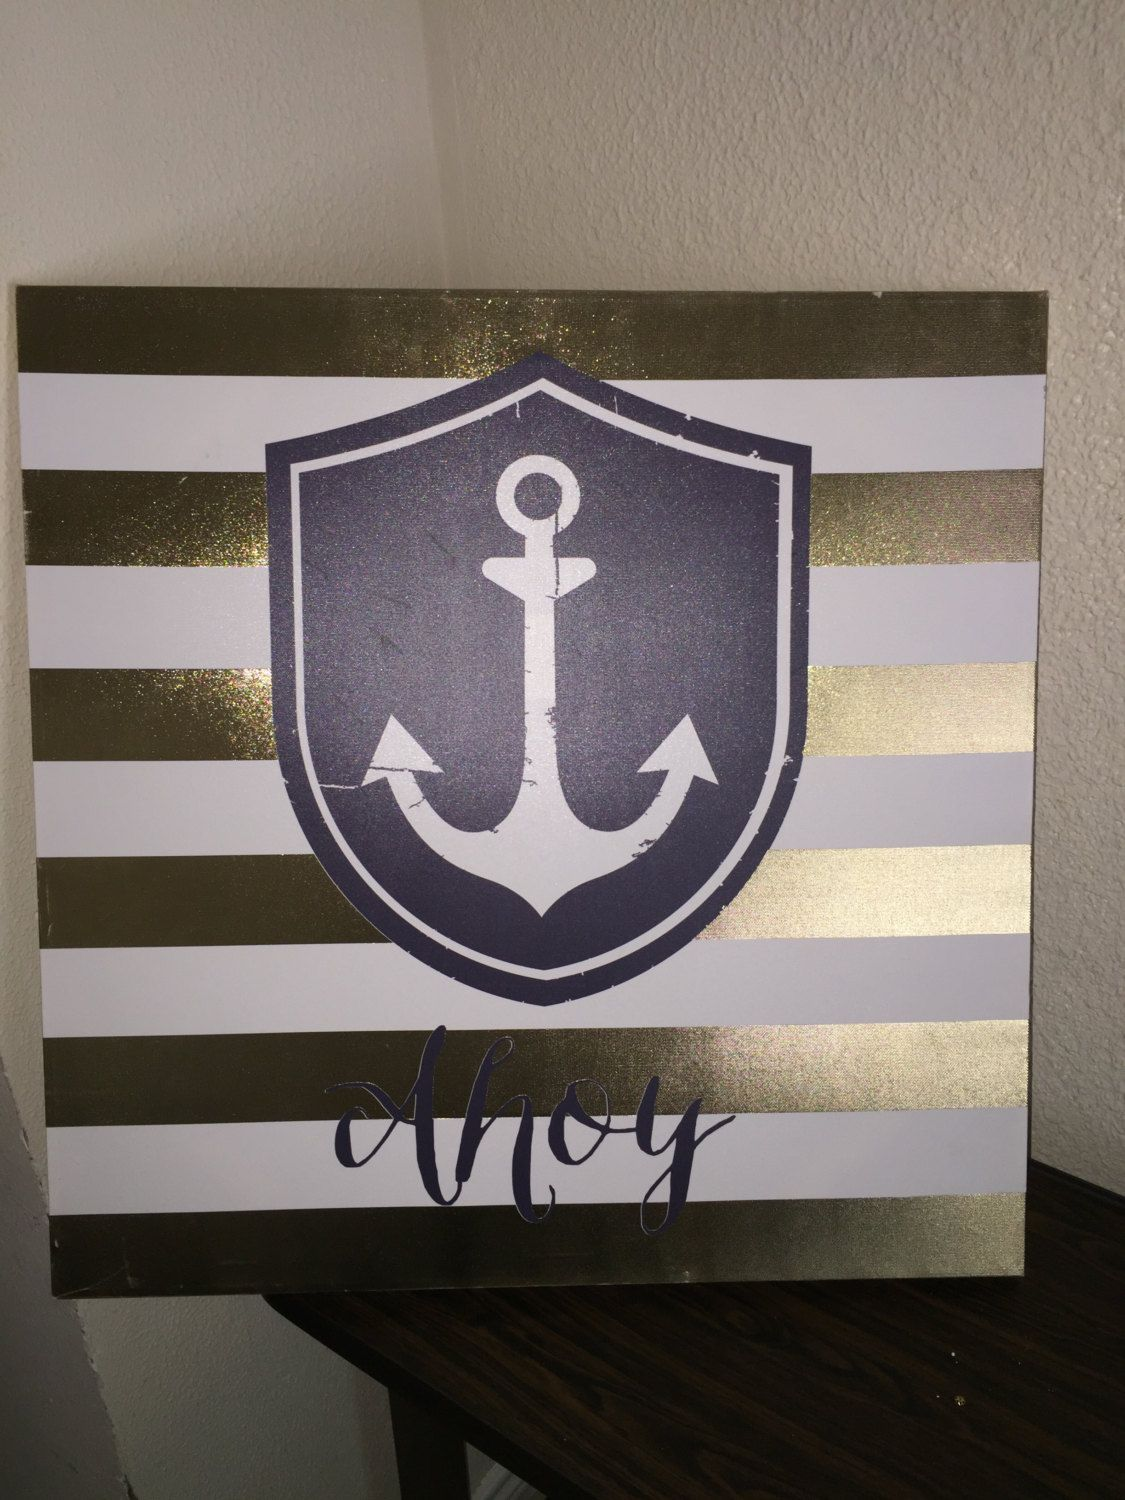 Nautical Anchor On Canvas Screen Printed Anchor On Canvas Wall Art Vintage Nautical Wall Decor Ahoy Wall Decor Home Wall Accent With Images Prints Canvas Wall Art Art